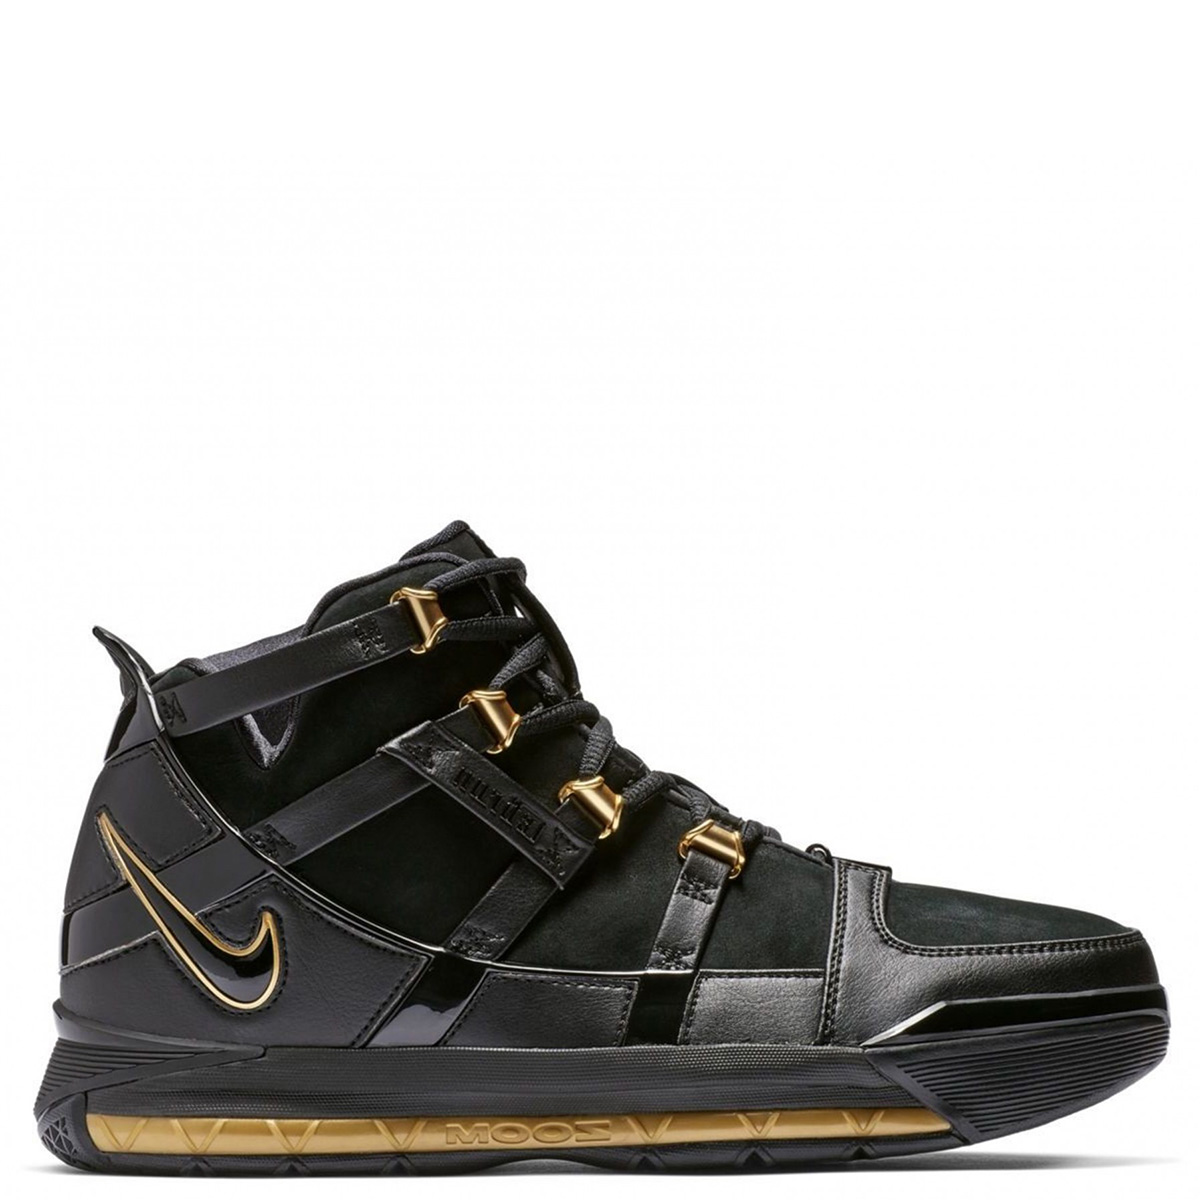 quality design a2916 fc25d Nike NIKE Revlon sneakers men ZOOM LEBRON 3 QS black AO2434-001  192